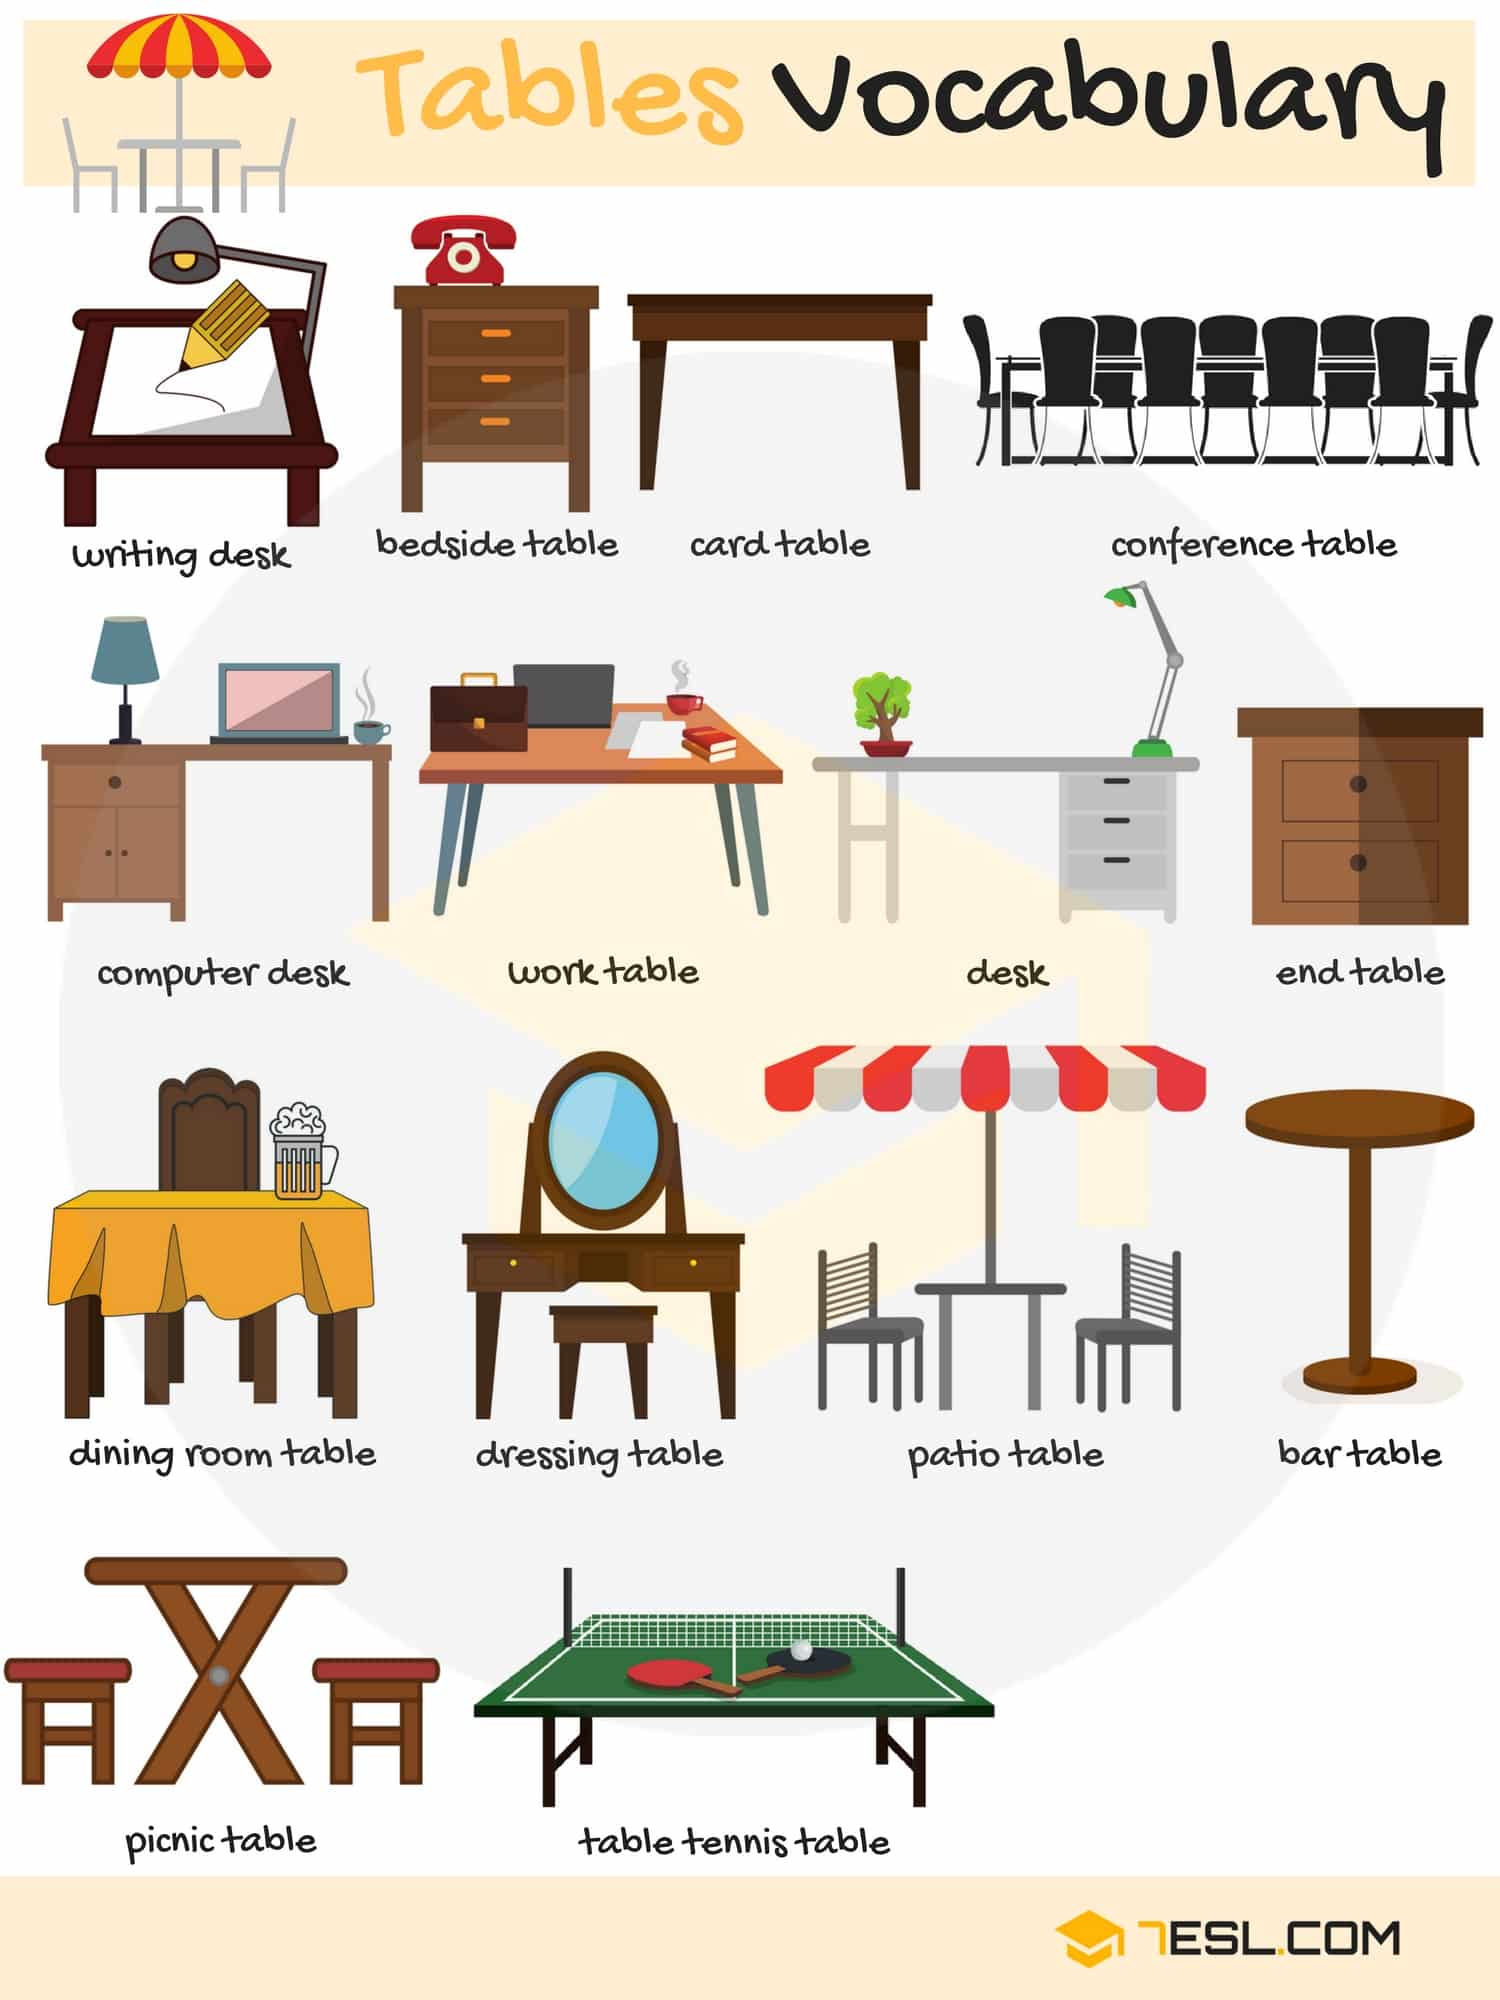 Types Of Tables List Of Tables With Pictures In English